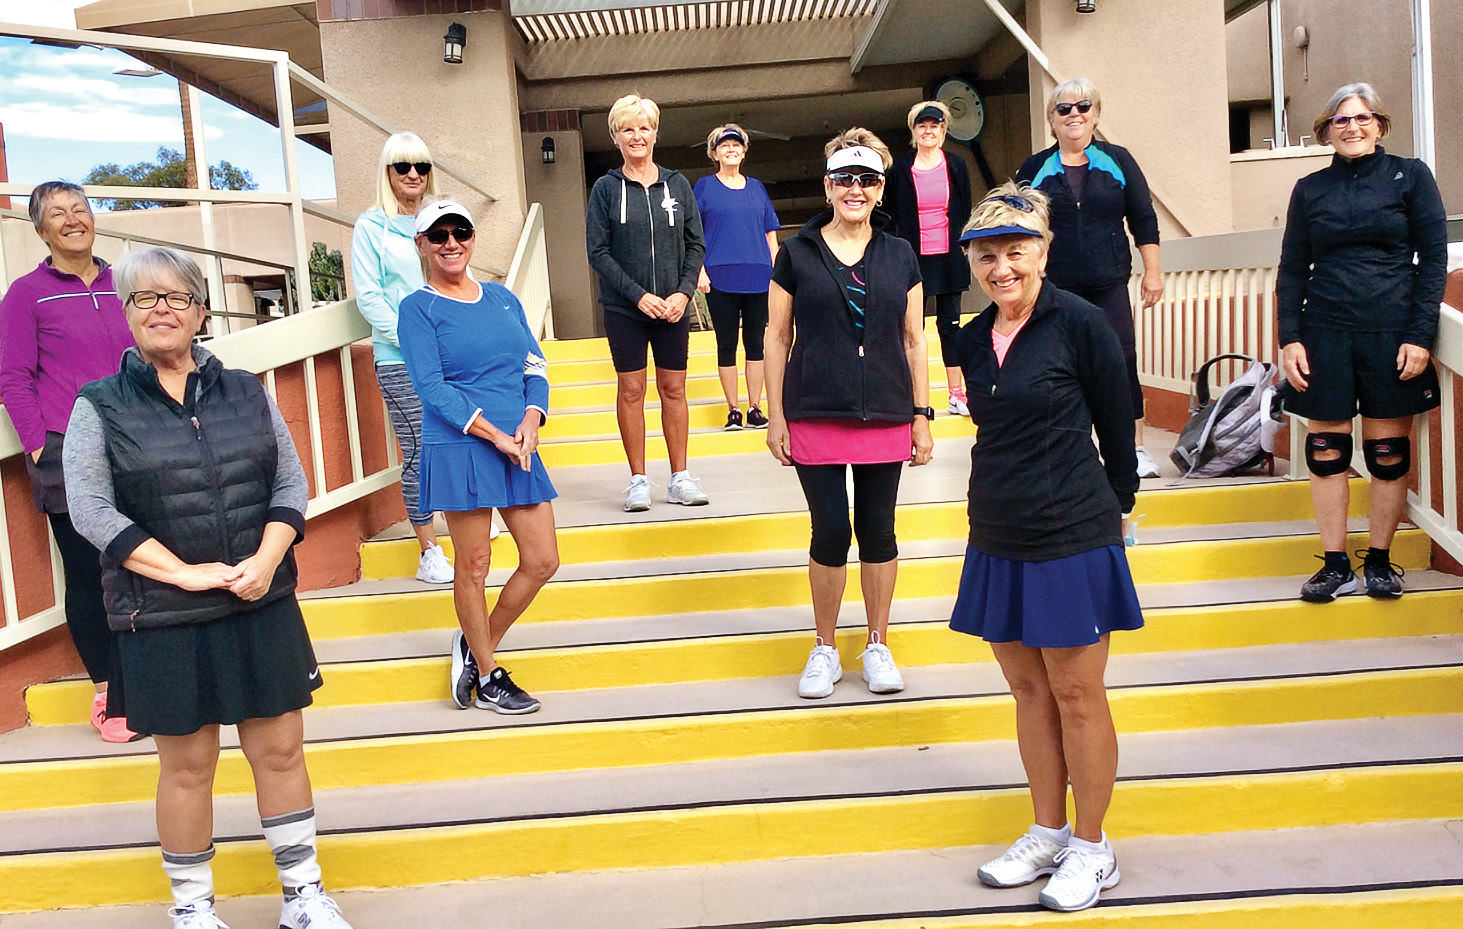 Players in the Monday Women's League include front row: Kathy Moliter and Susan Aparicio; second row: Cindy McCarville, Kathy Moore, Susie Dunn, and Linda Dirksmeyer; back row: Gwen Lucas, Kris Ongert, Jenette Curran, Kim Vargas, and Peg Onken.